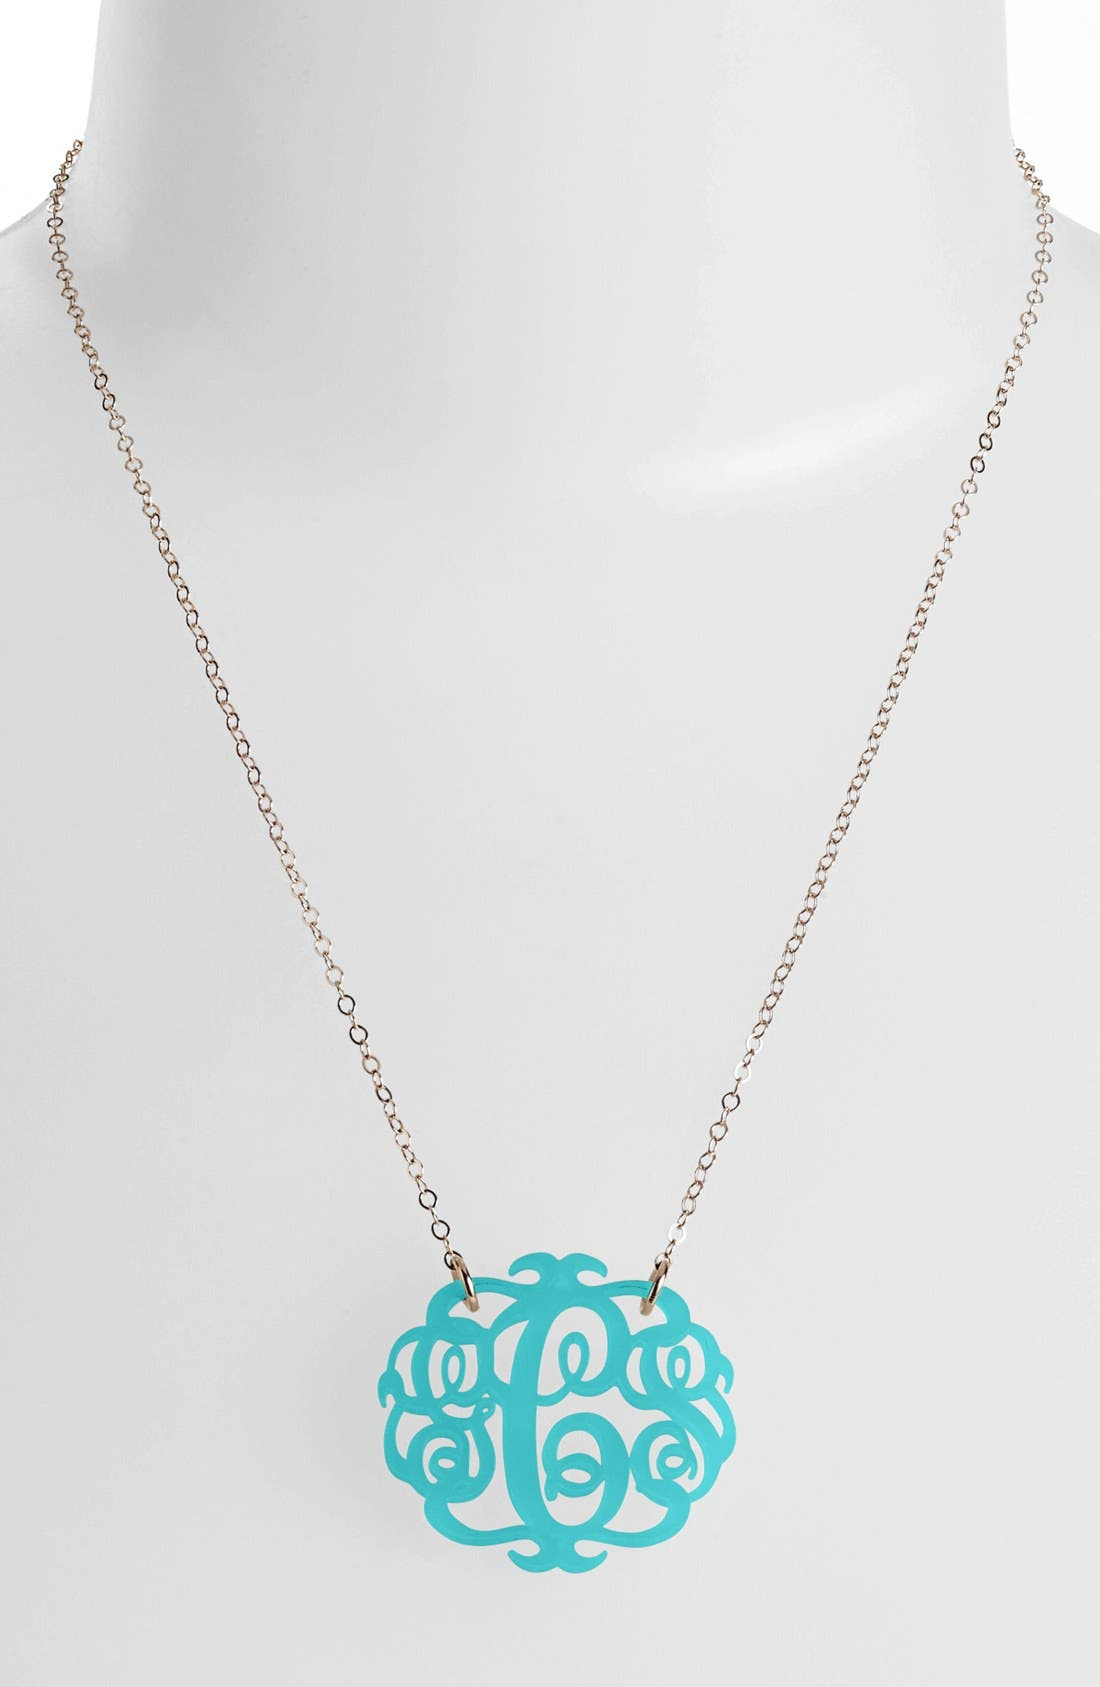 Main Image - Moon and Lola Medium Oval Personalized Monogram Pendant Necklace (Nordstrom Exclusive)